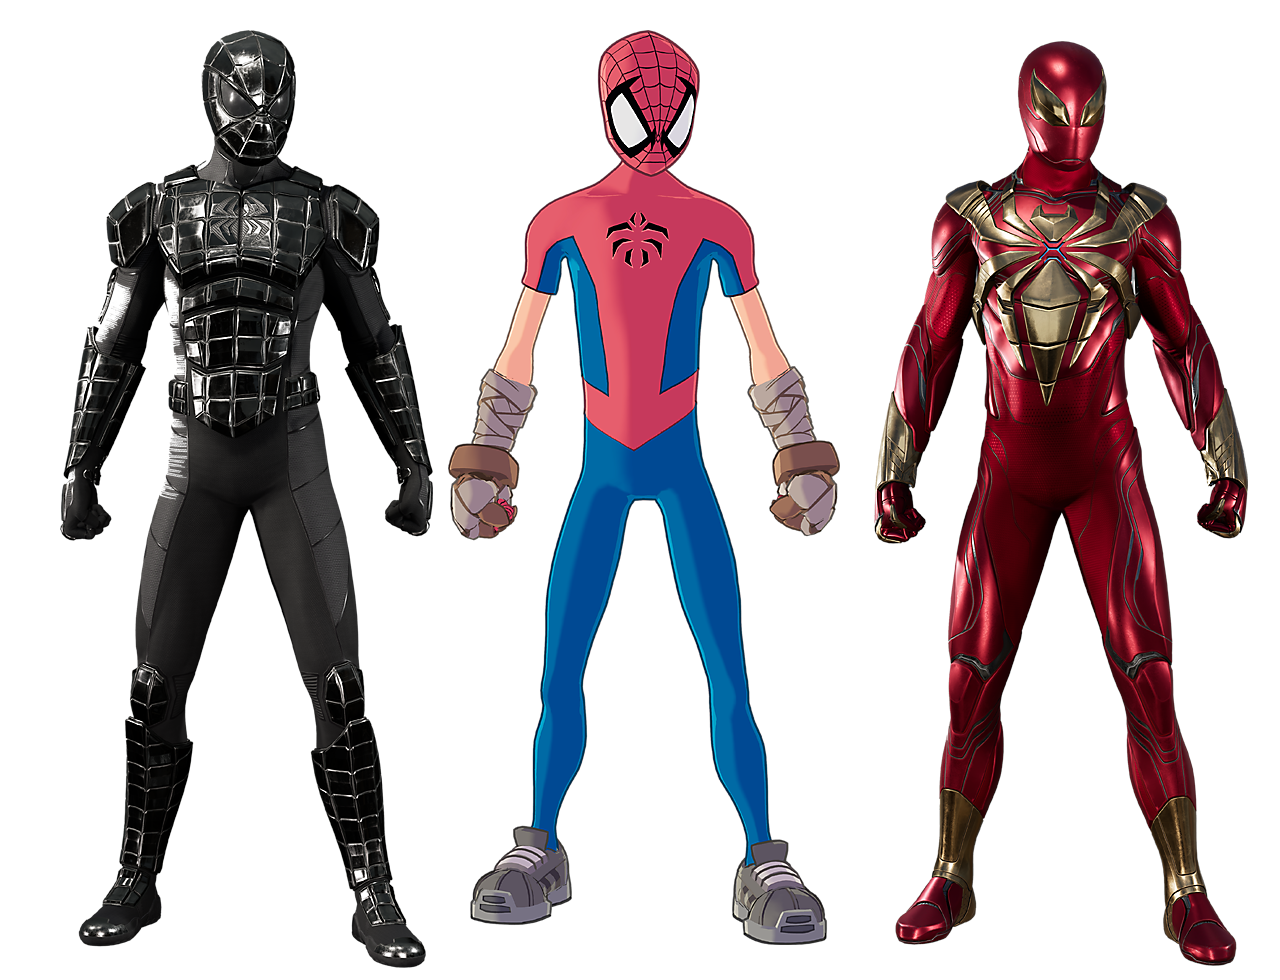 Marvel's Spider-Man - Turf Wars suits